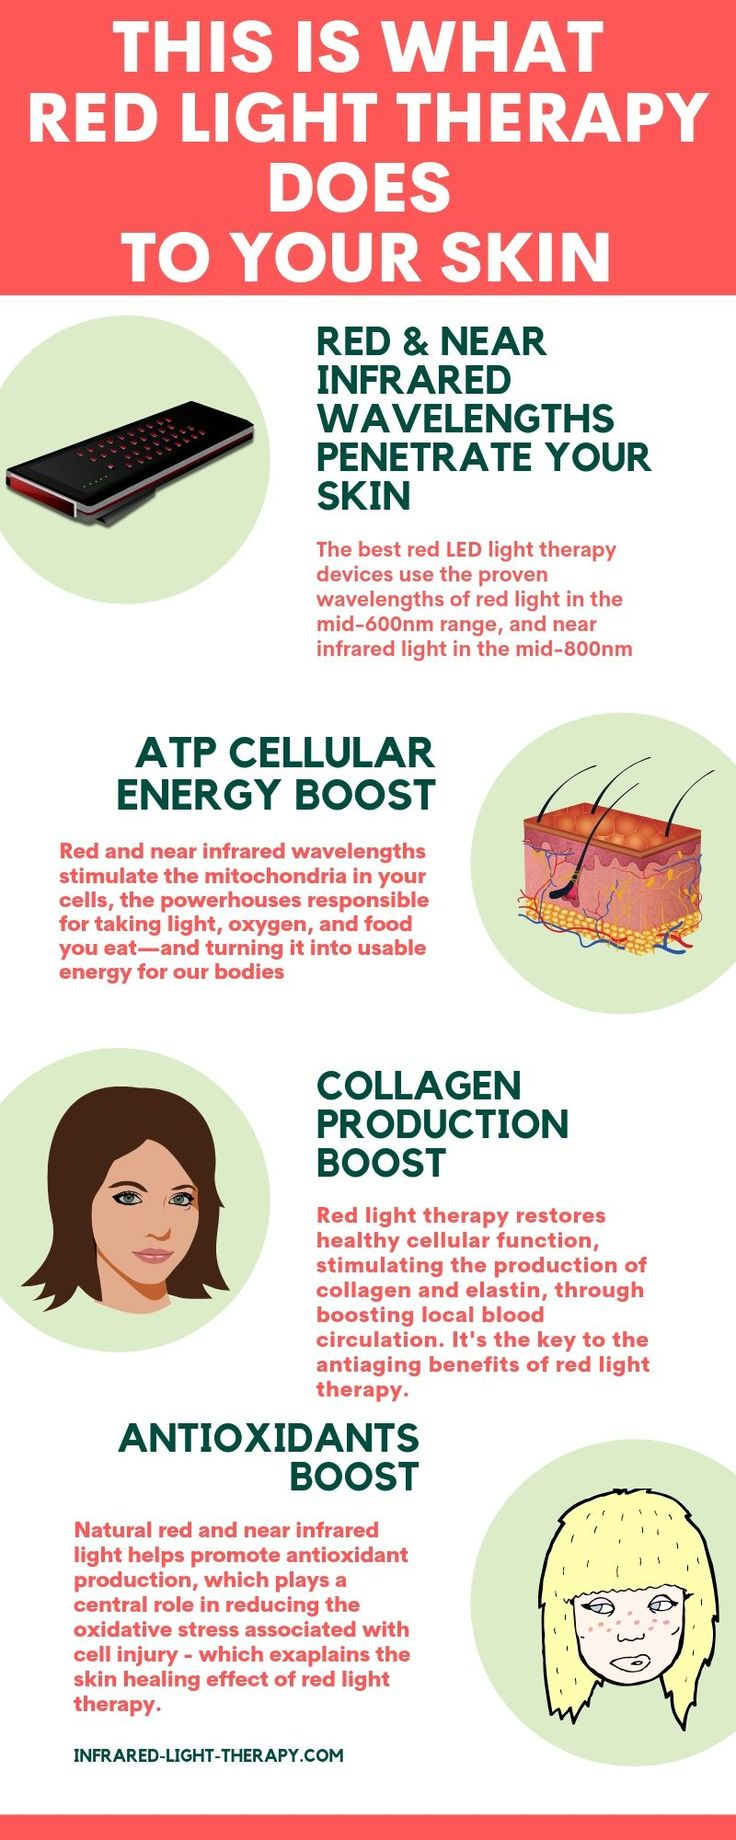 Here's What Red Light Therapy Does to Your Skin